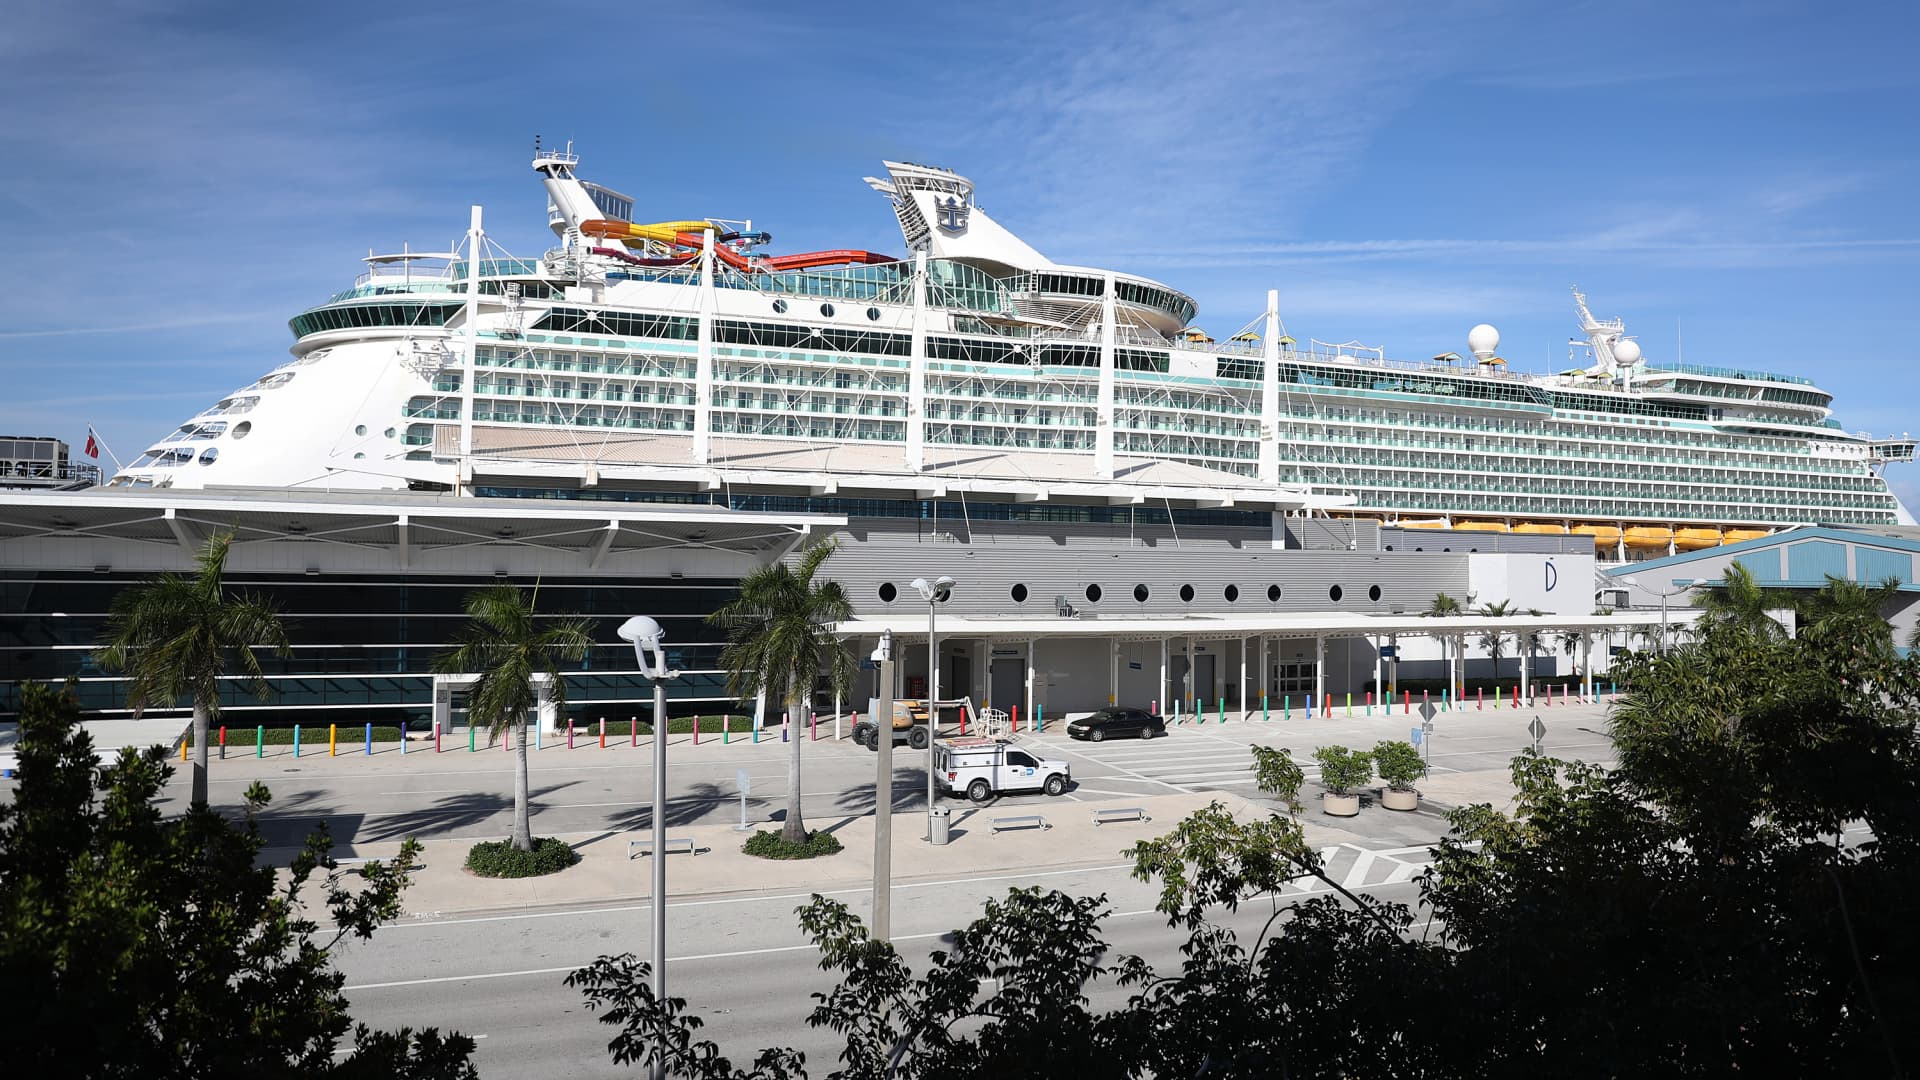 Royal Caribbean's Navigator of the Sea cruise ship is docked at PortMiami on March 2, 2021 in Miami, Florida.